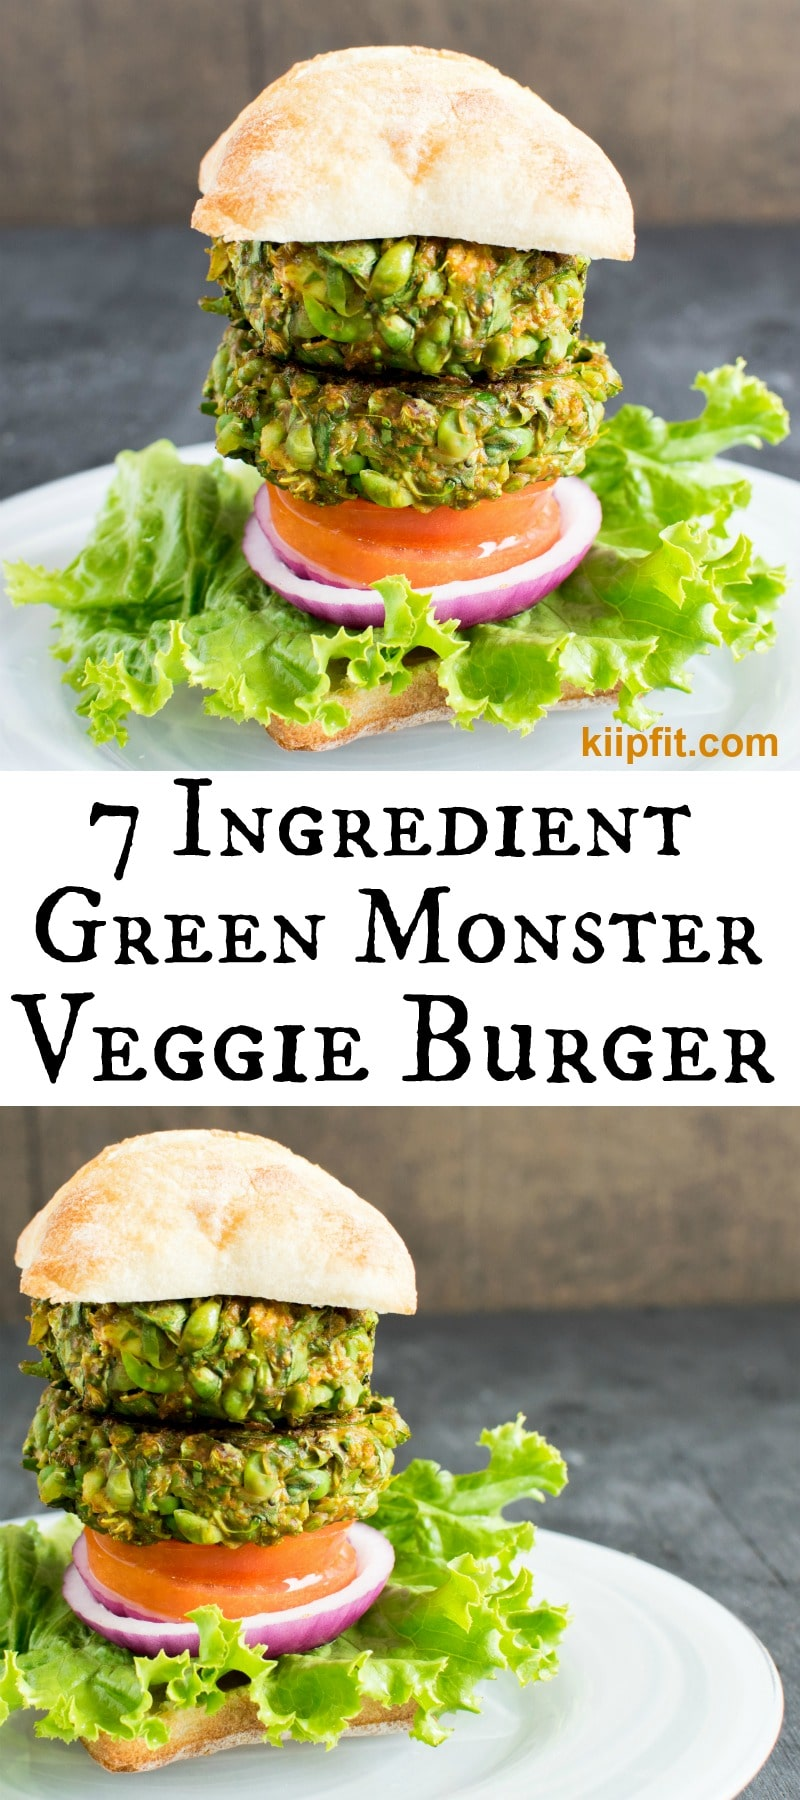 7 Ingredient Green Monster Veggie Burger is a delicious meal with immense nutrition and also it is super easy to make. [ vegan , GF, oil free ] kiipfit.com